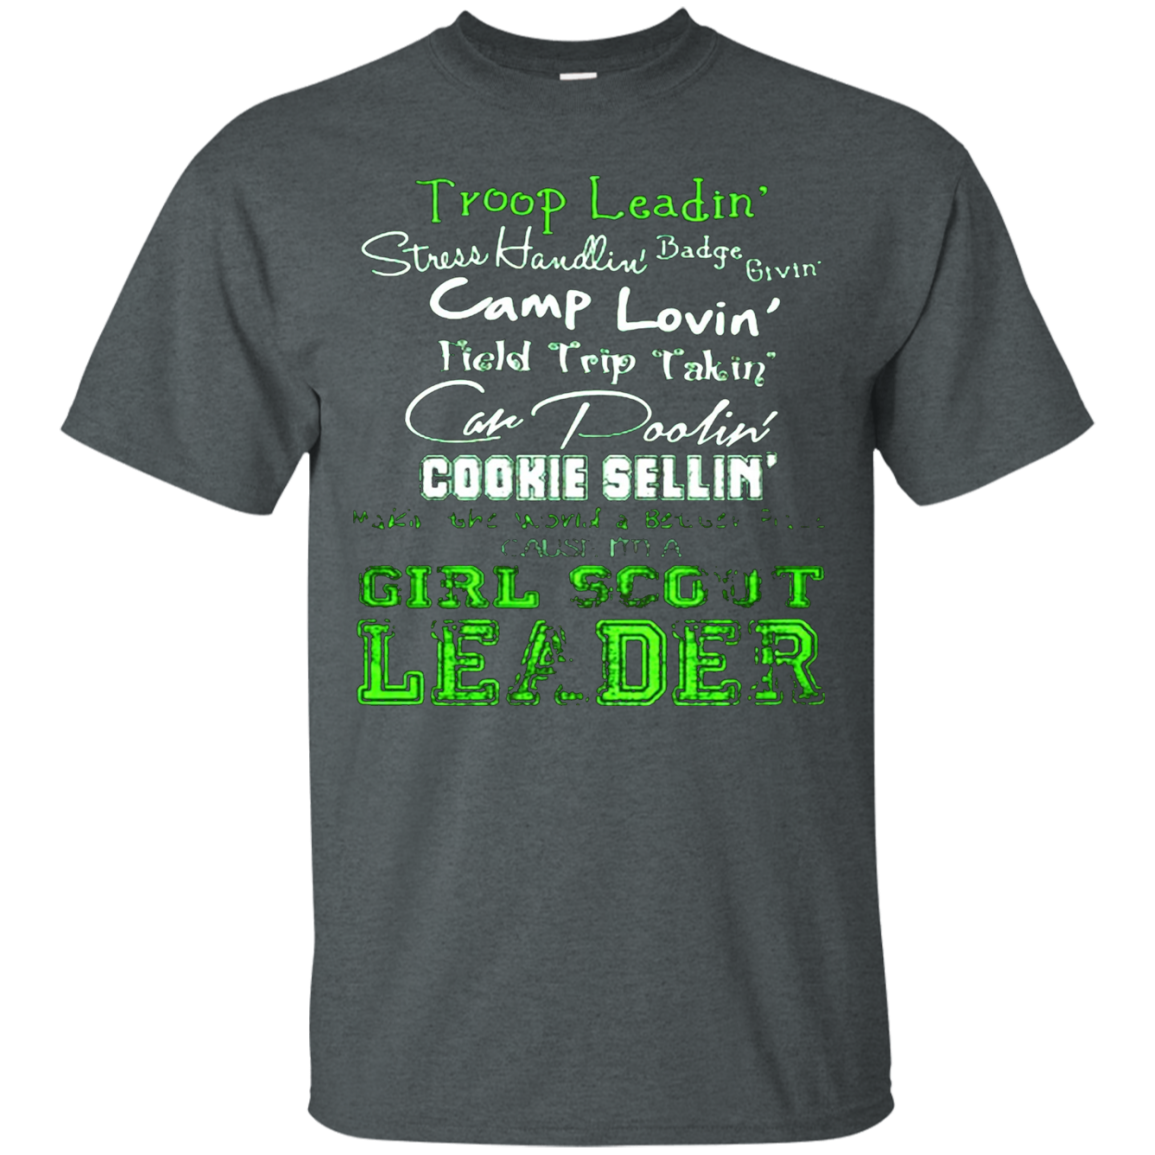 GIRL SCOUT LEADER T SHIRT